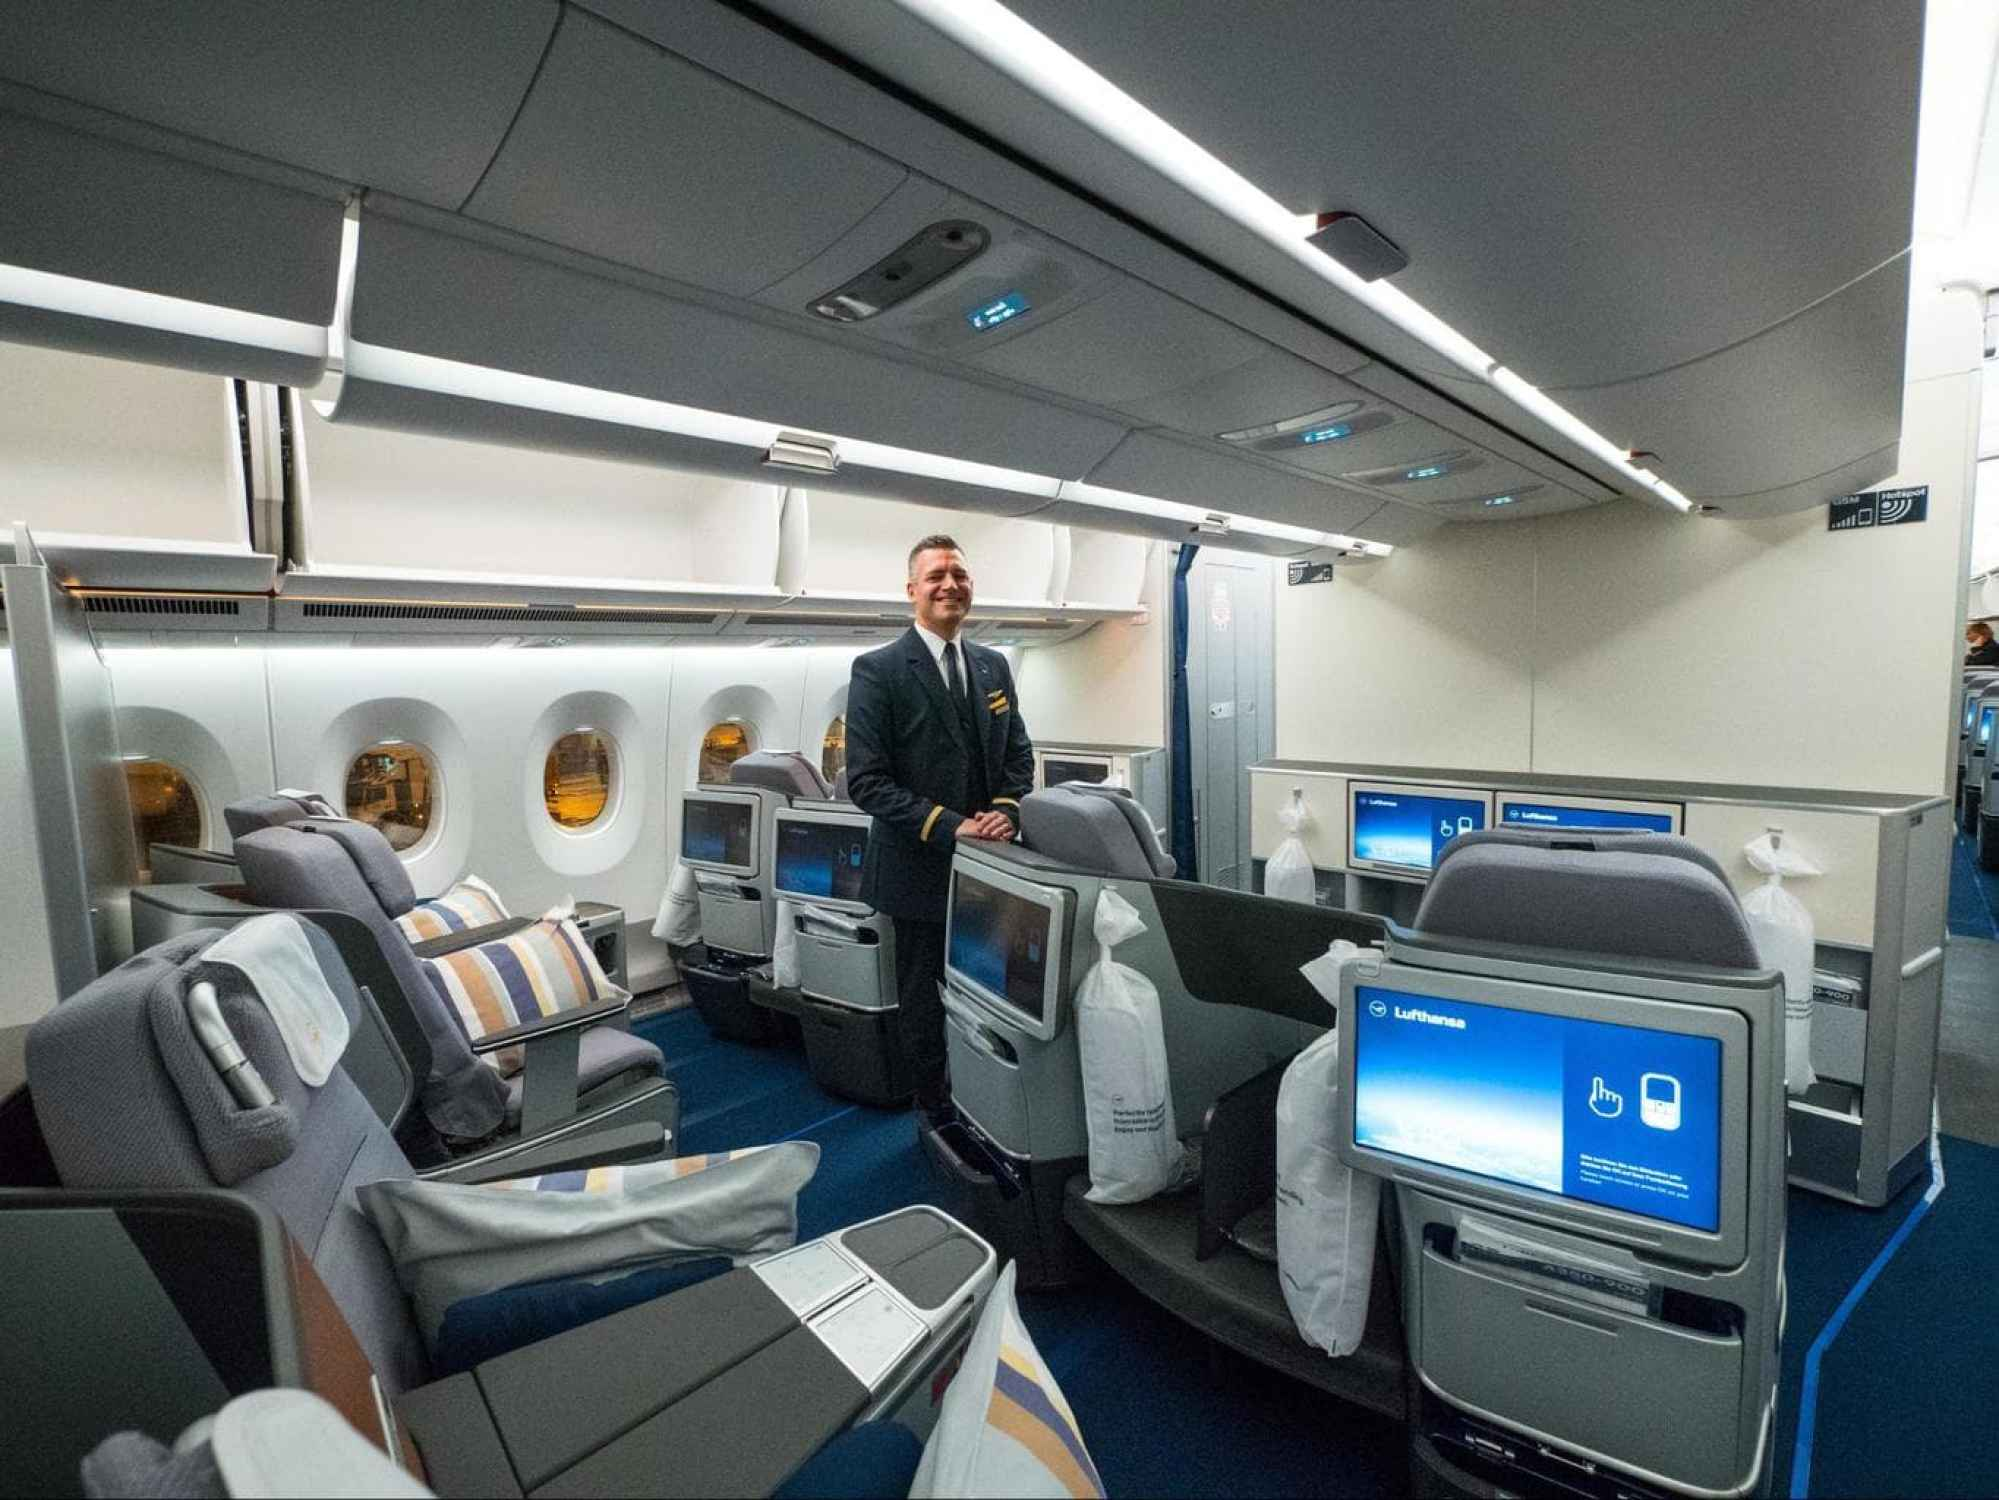 The Business Class cabin on the new Lufthansa A350